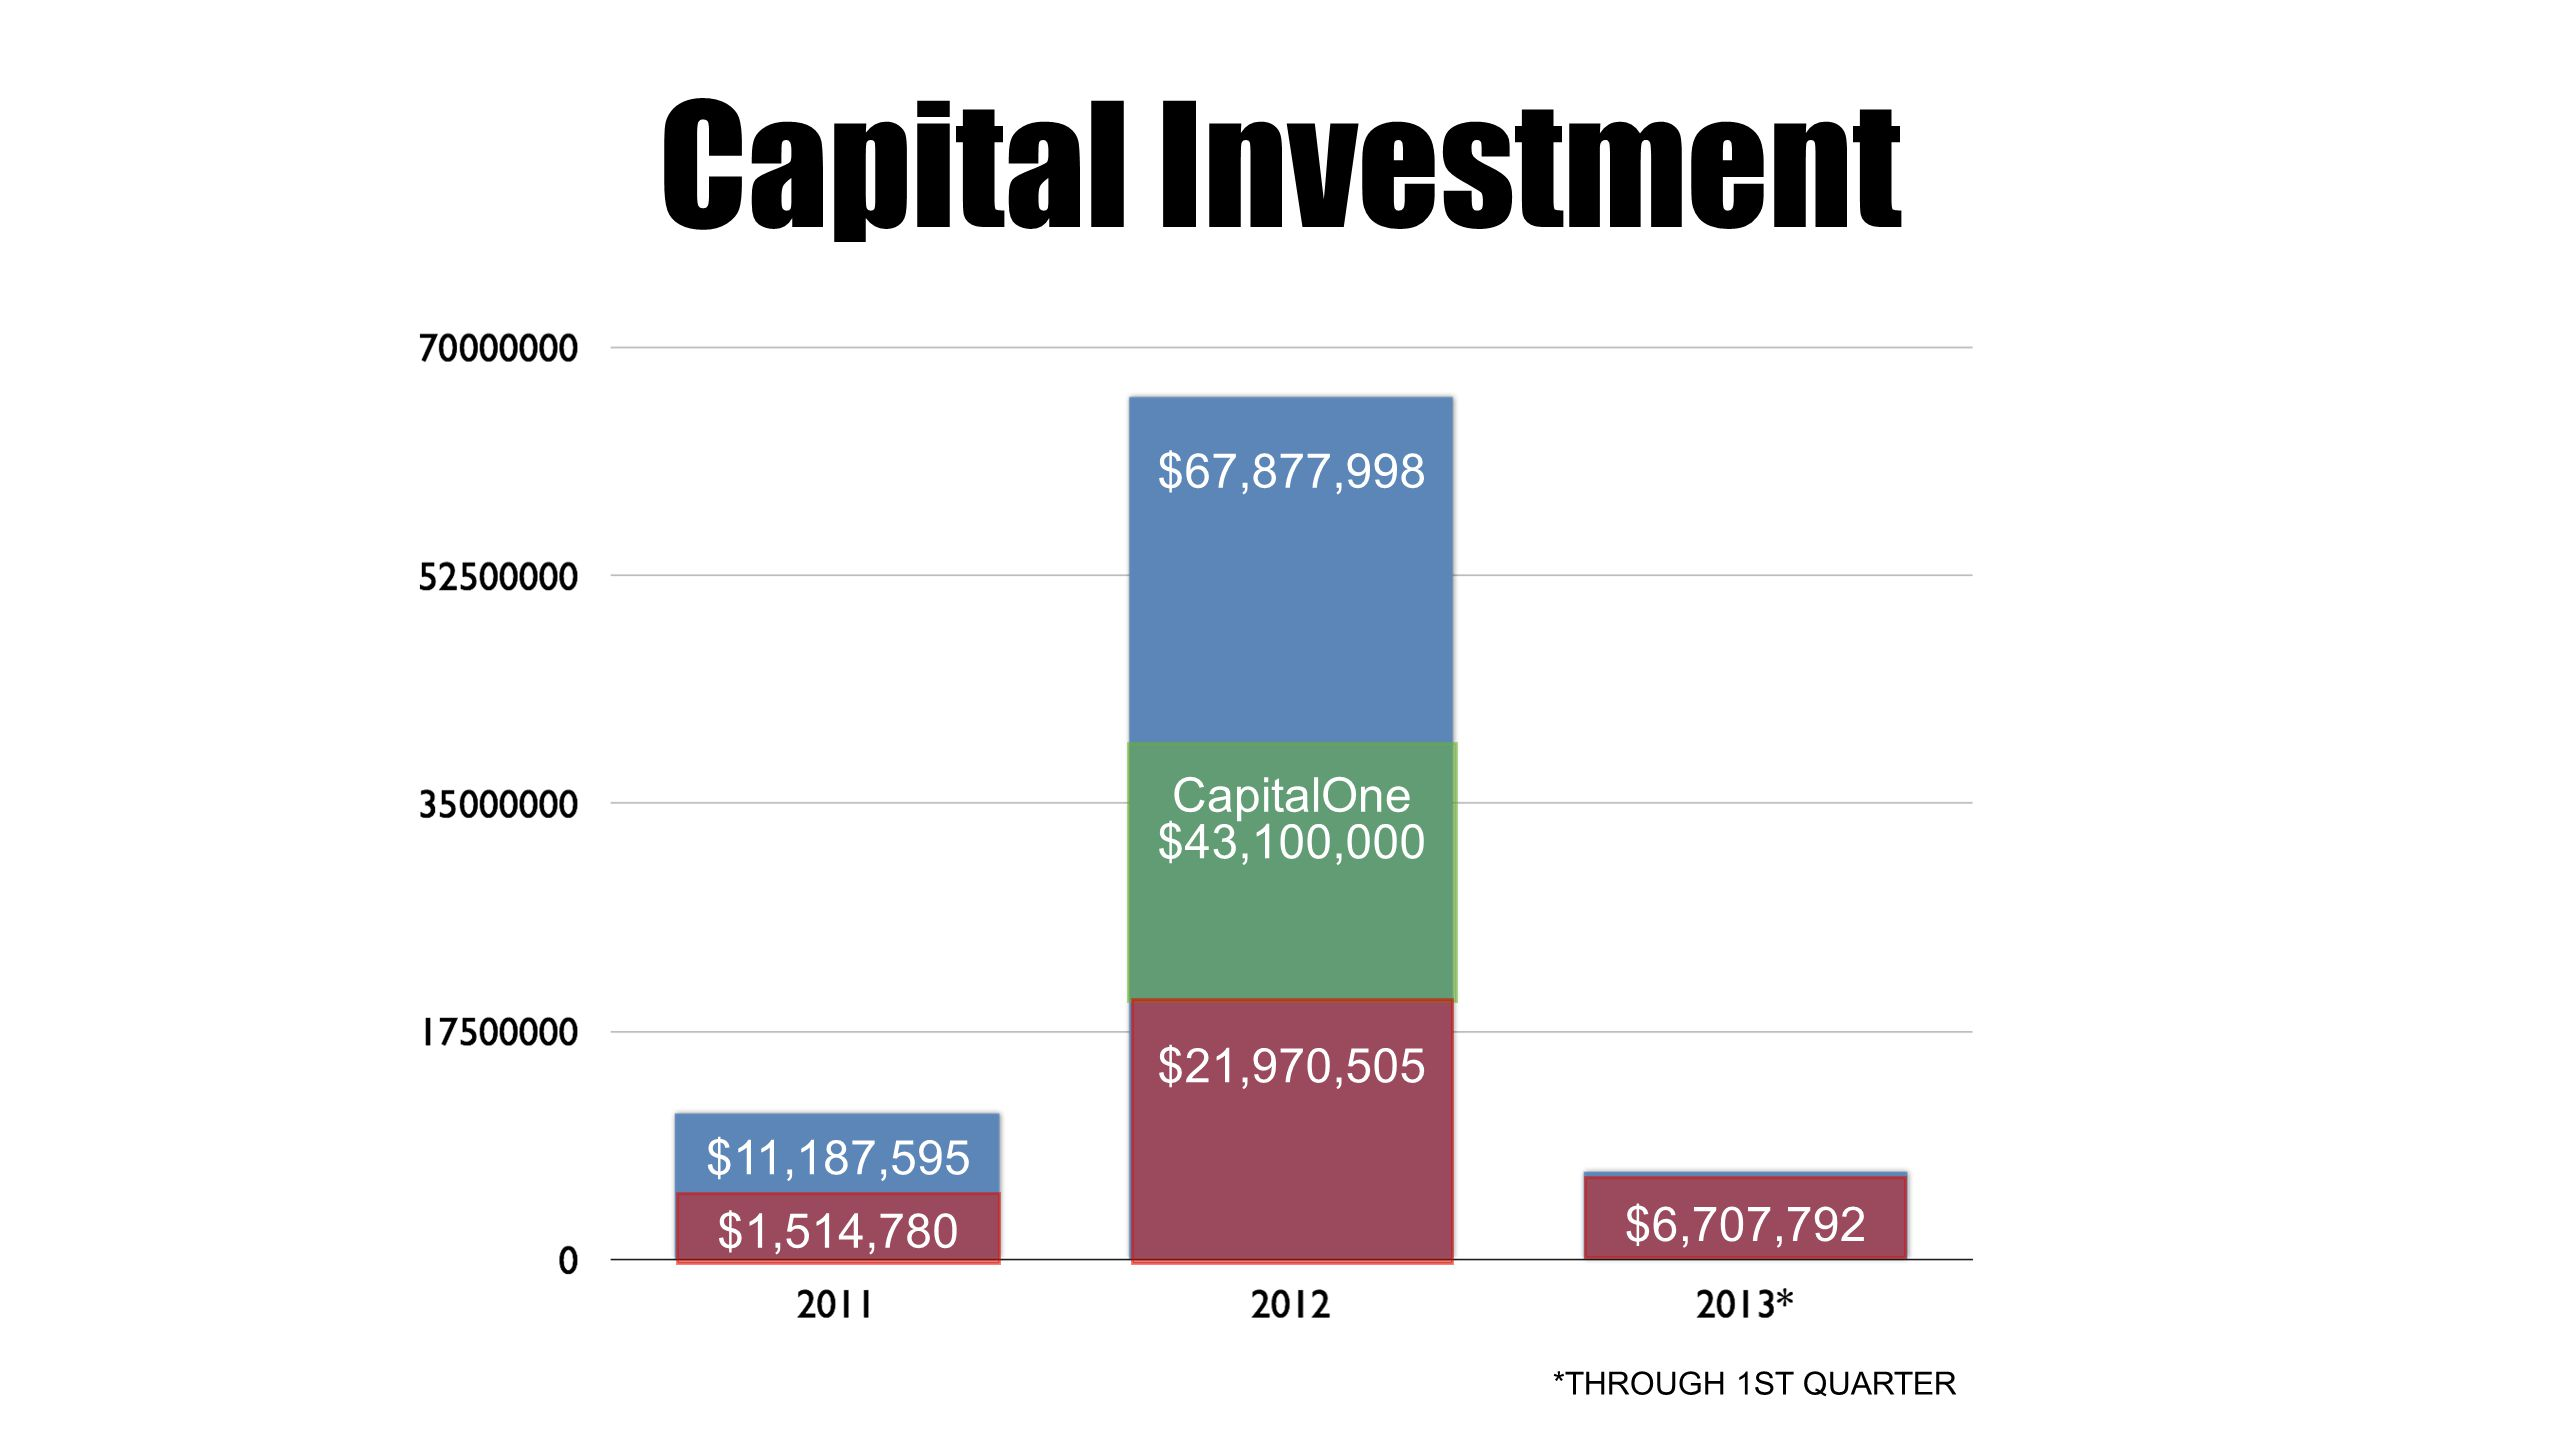 Capital Investment $67,877,998 *THROUGH 1ST QUARTER $43,100,000 CapitalOne $11,187,595 $1,514,780 $6,707,792 $21,970,505 $67,877,998